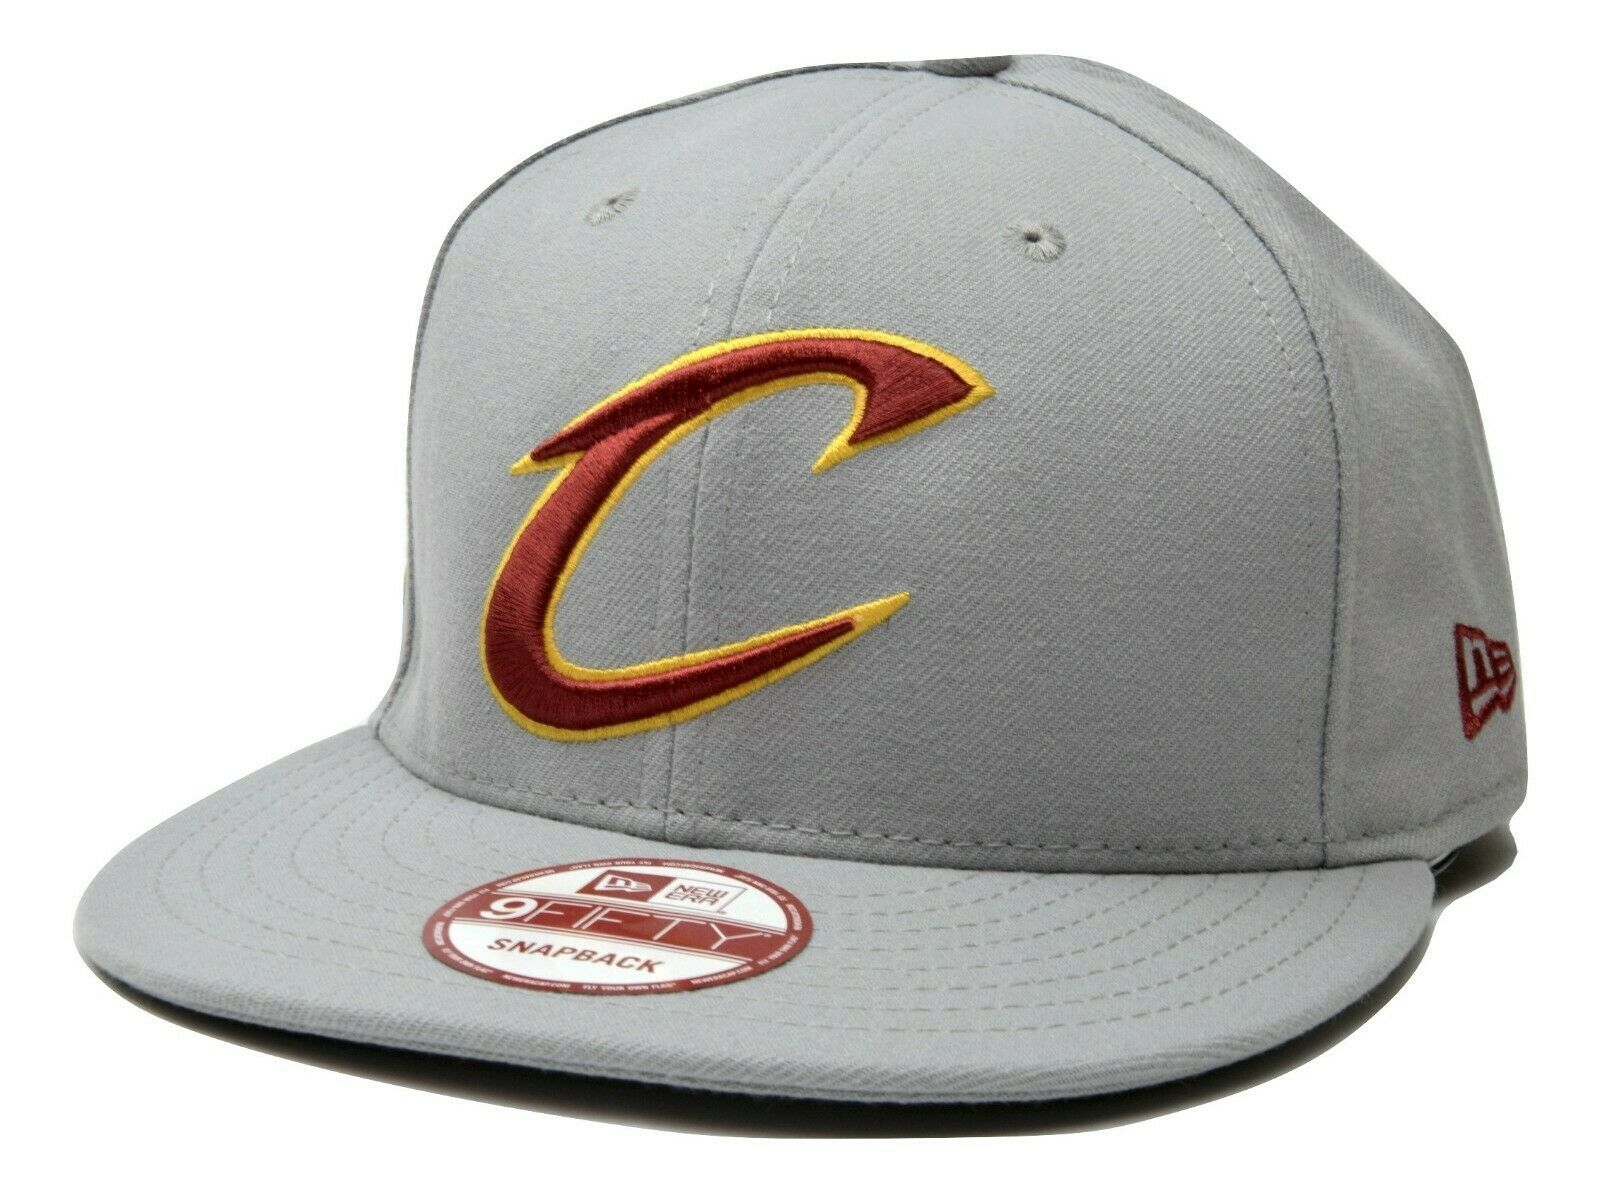 Primary image for Cleveland Cavaliers New Era 9FIFTY NBA Finals Light Gray Adjustable Snapback Cap